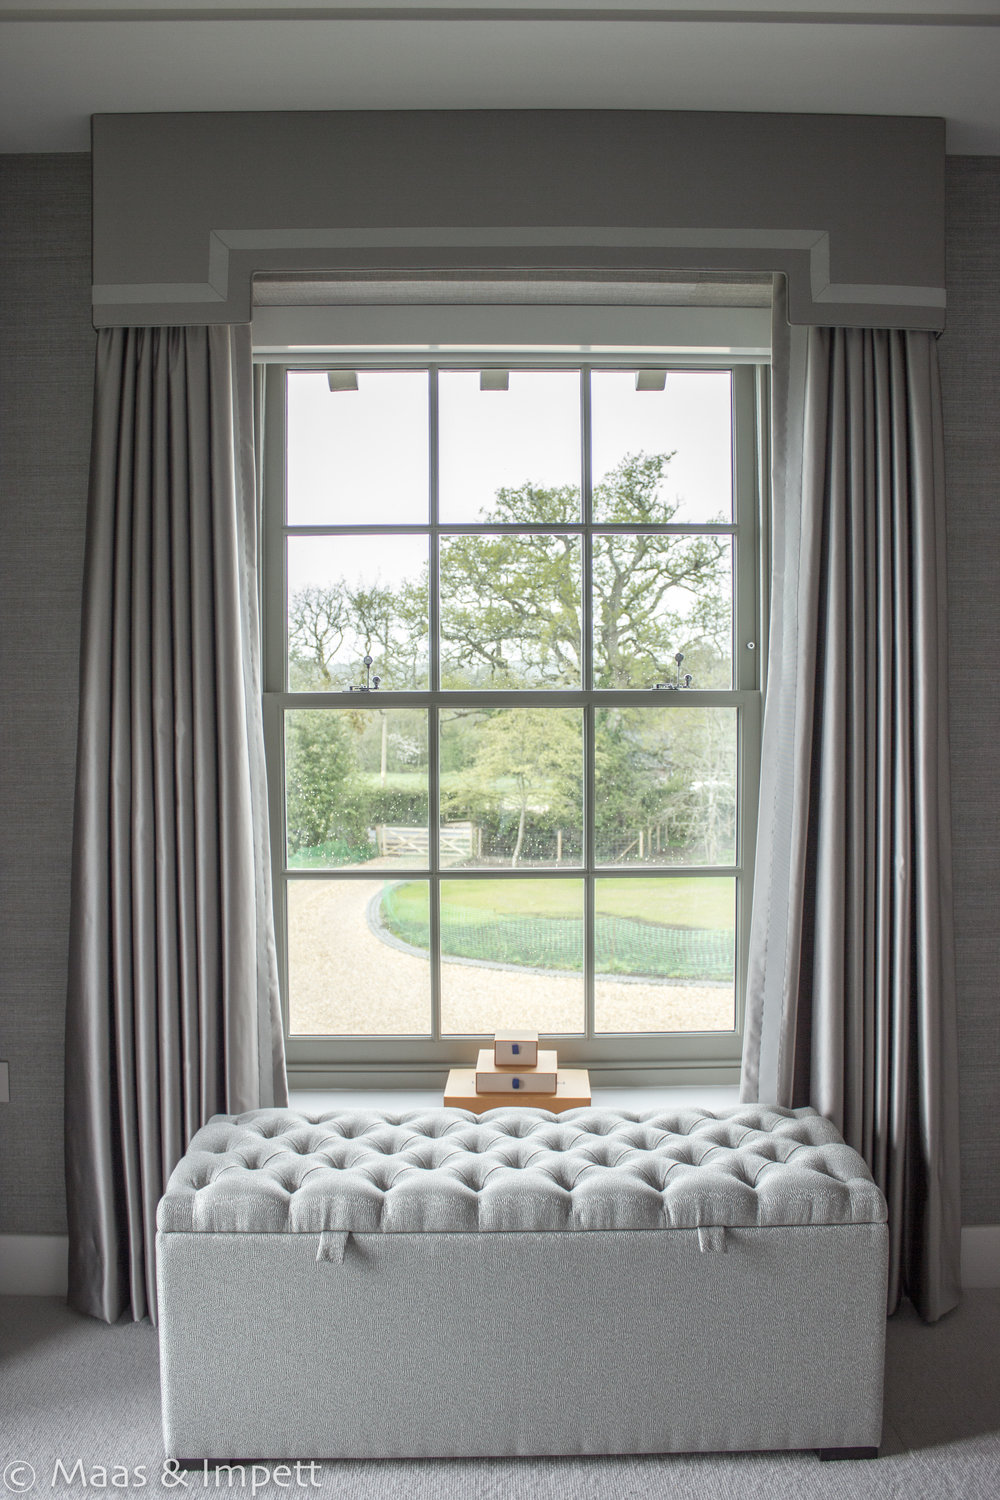 Bespoke Curtains, interior designers Maas & Impett in Hampshire